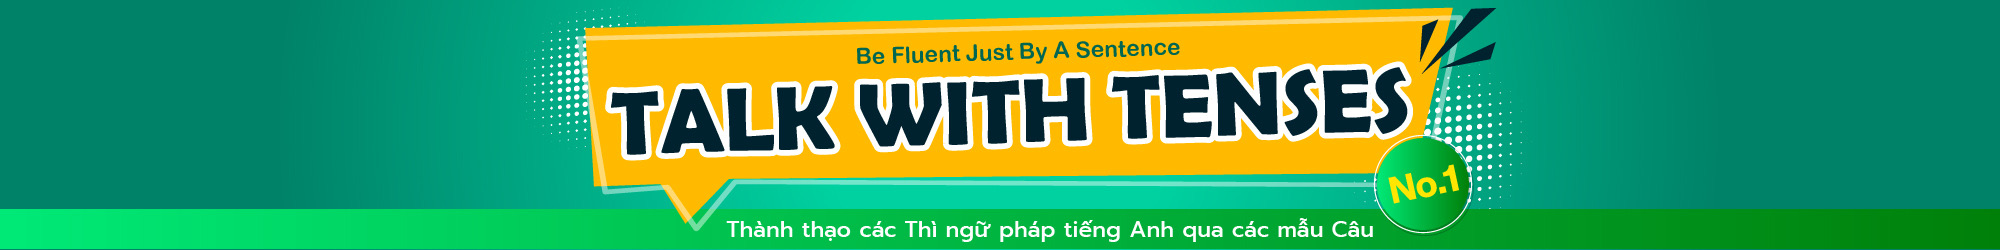 Talk with Tenses (No.1) banner